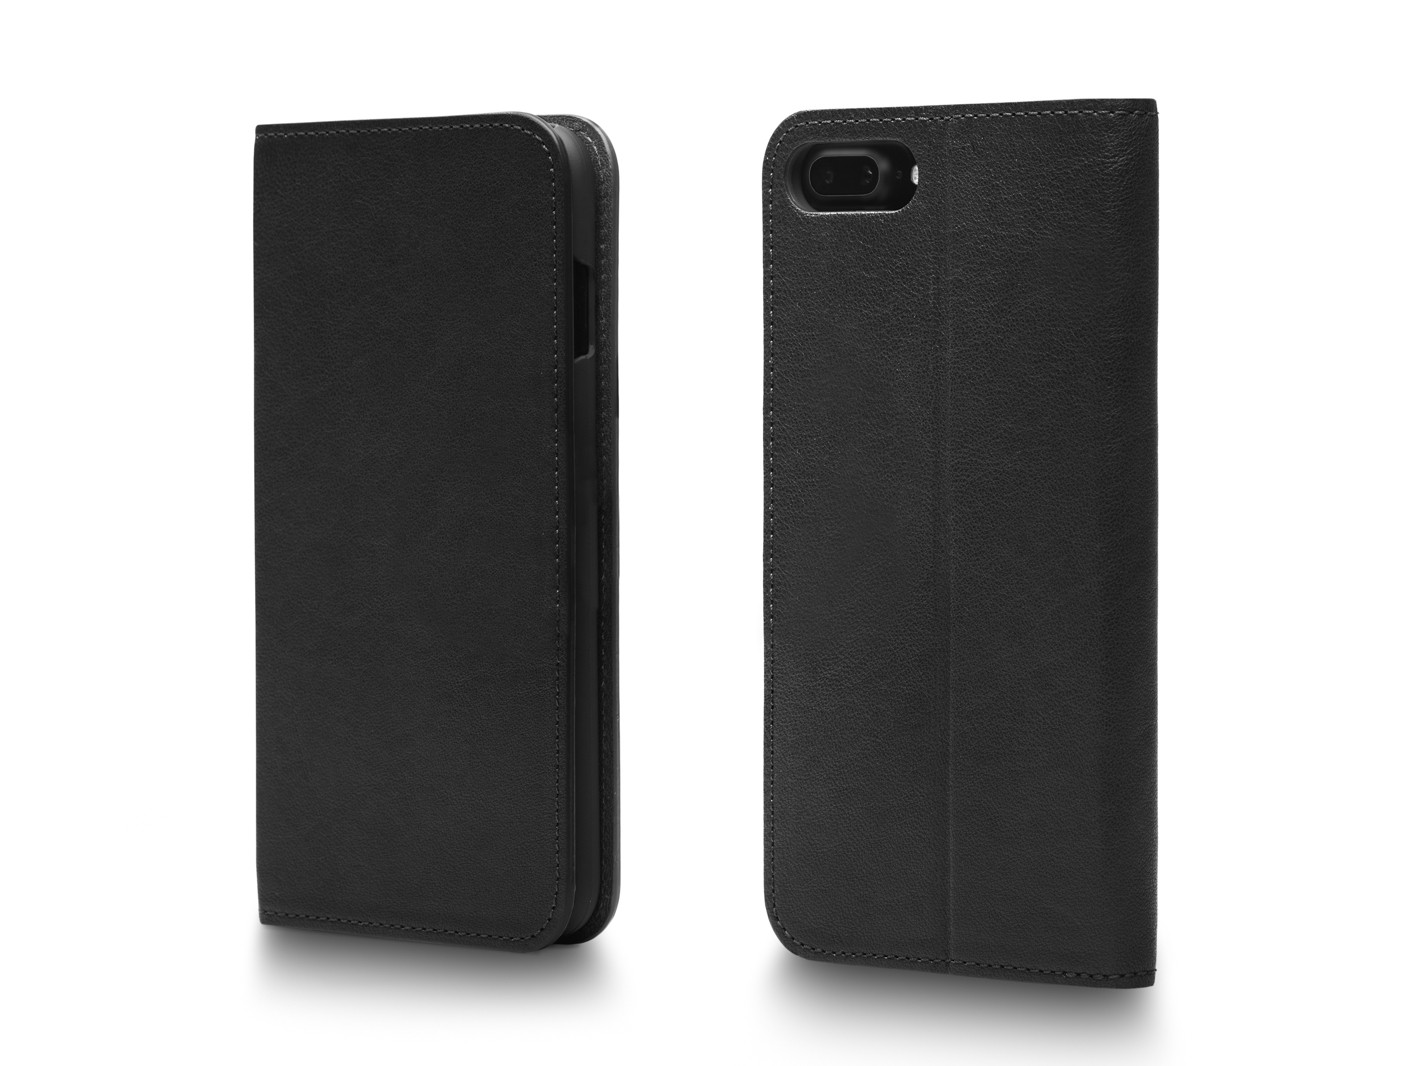 iPhone 8 Flip Case with Cards Inside